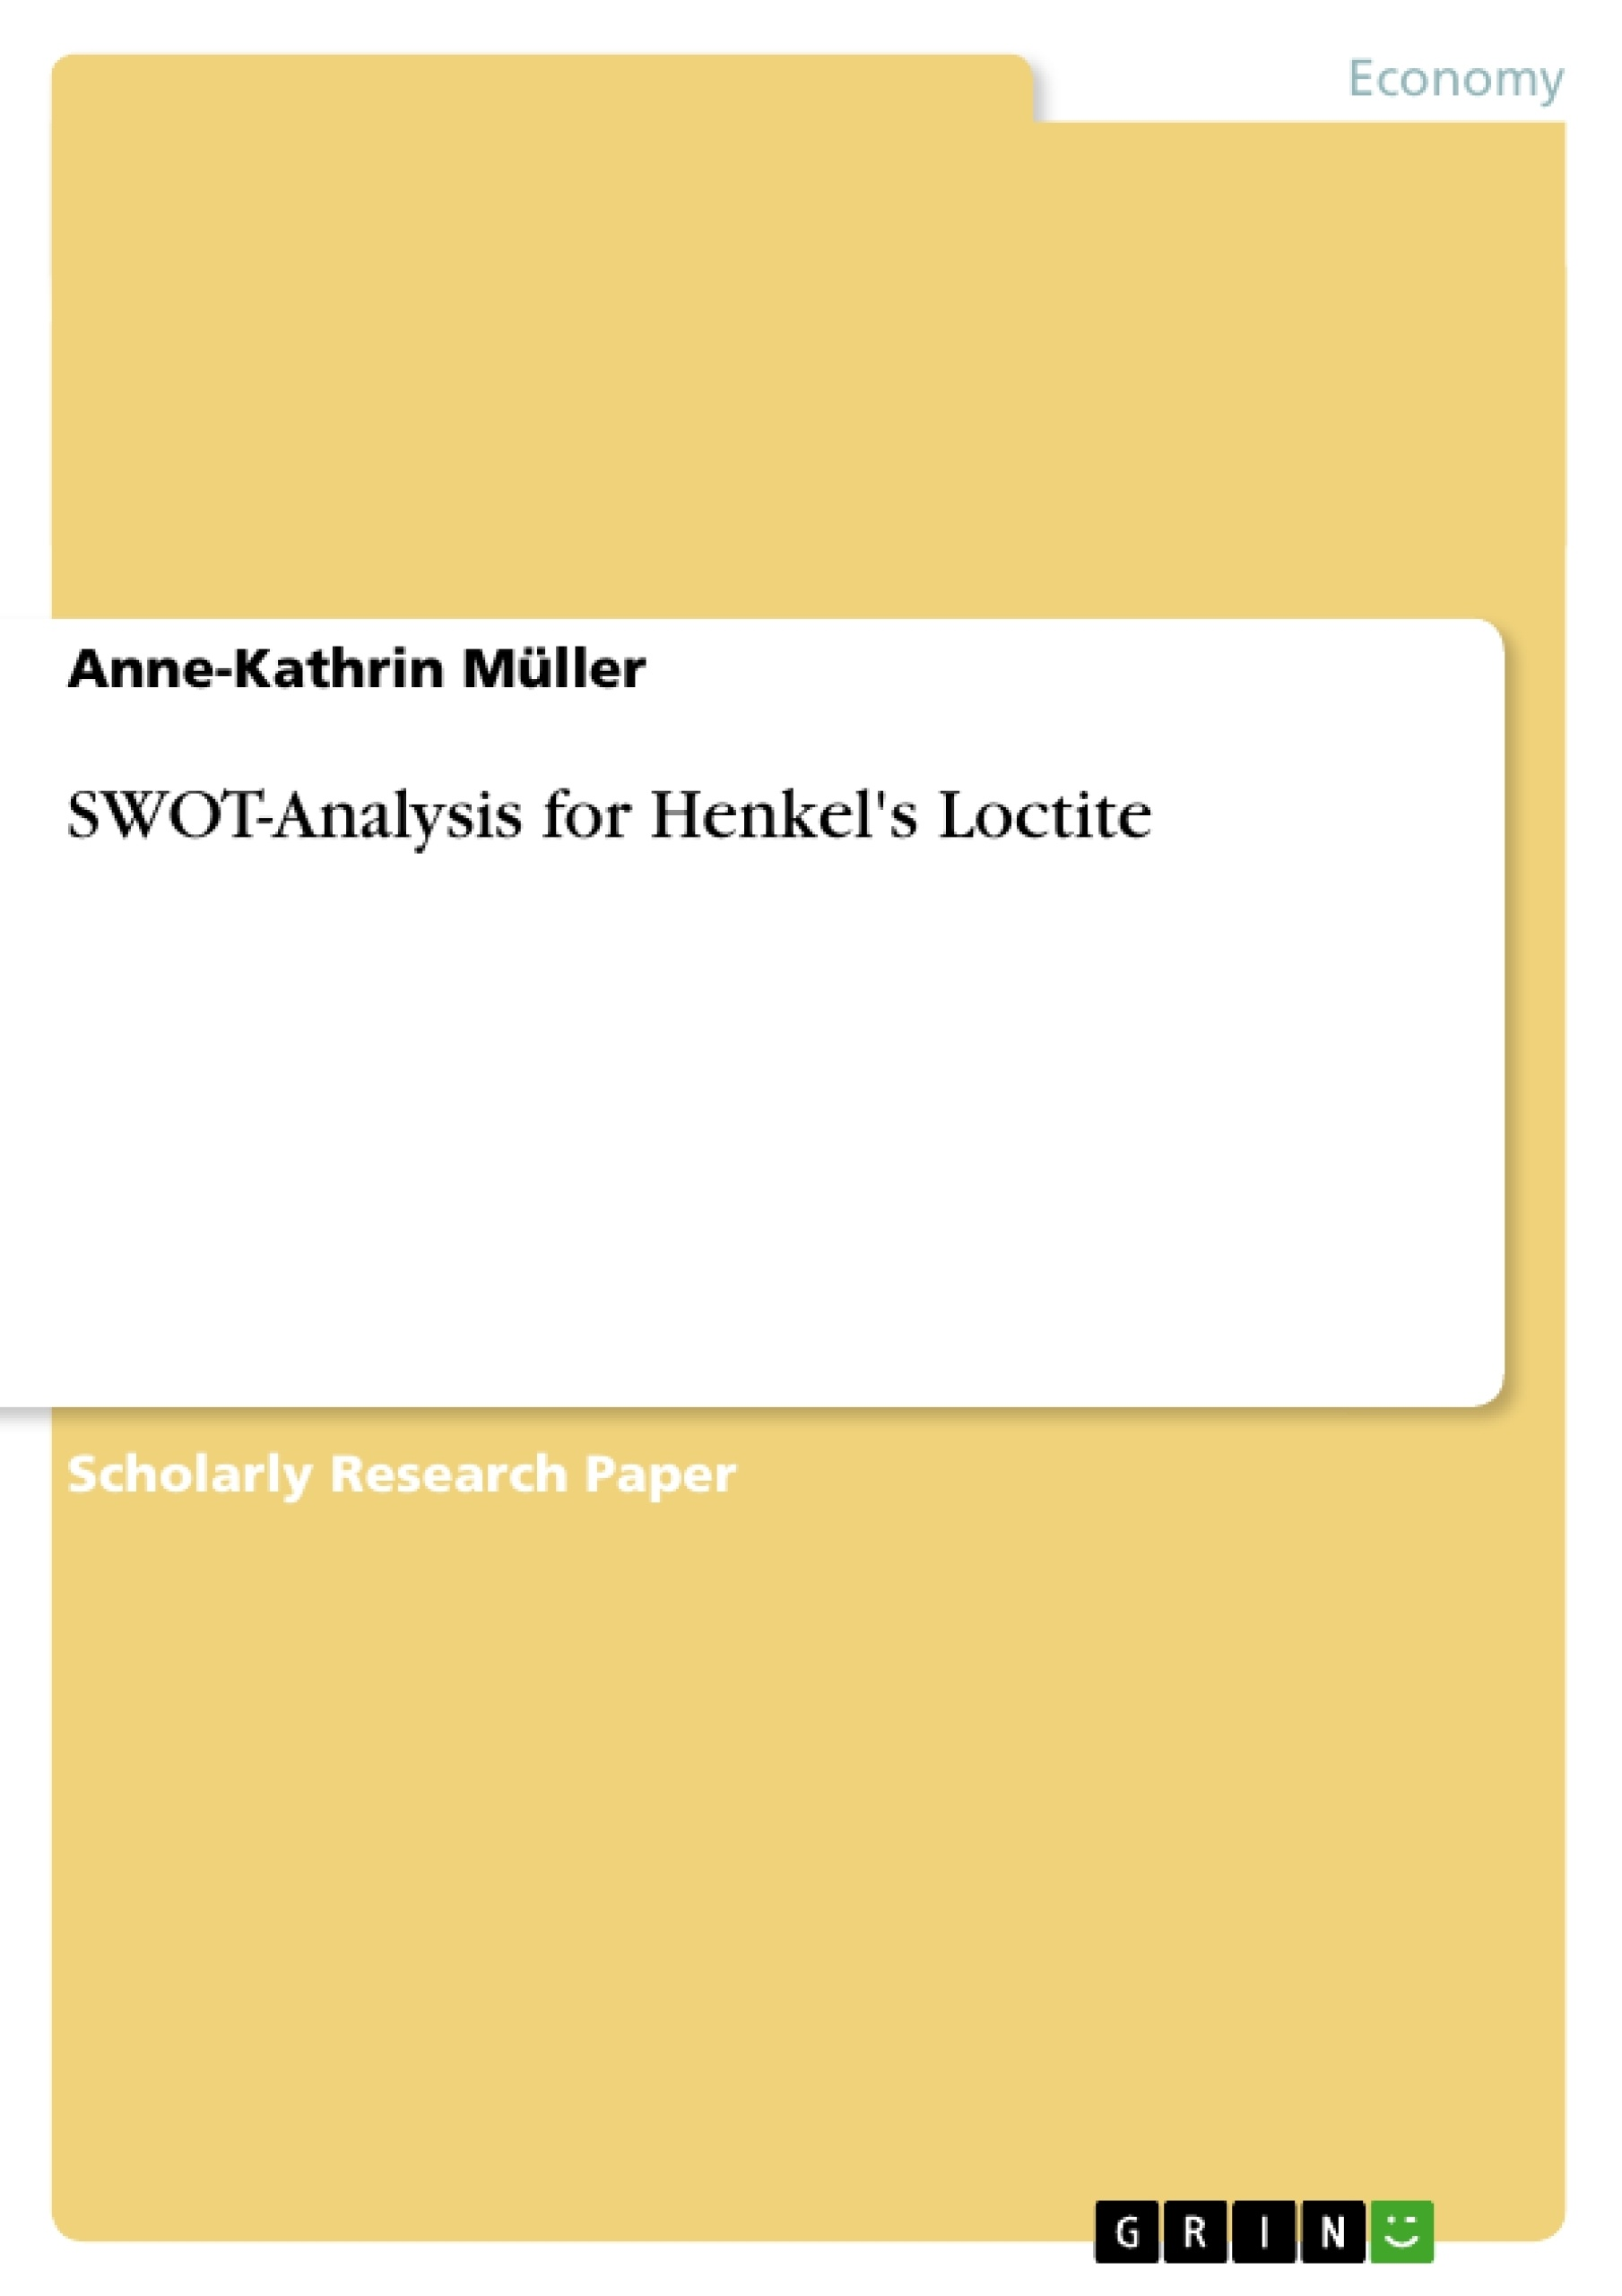 Title: SWOT-Analysis for Henkel's Loctite